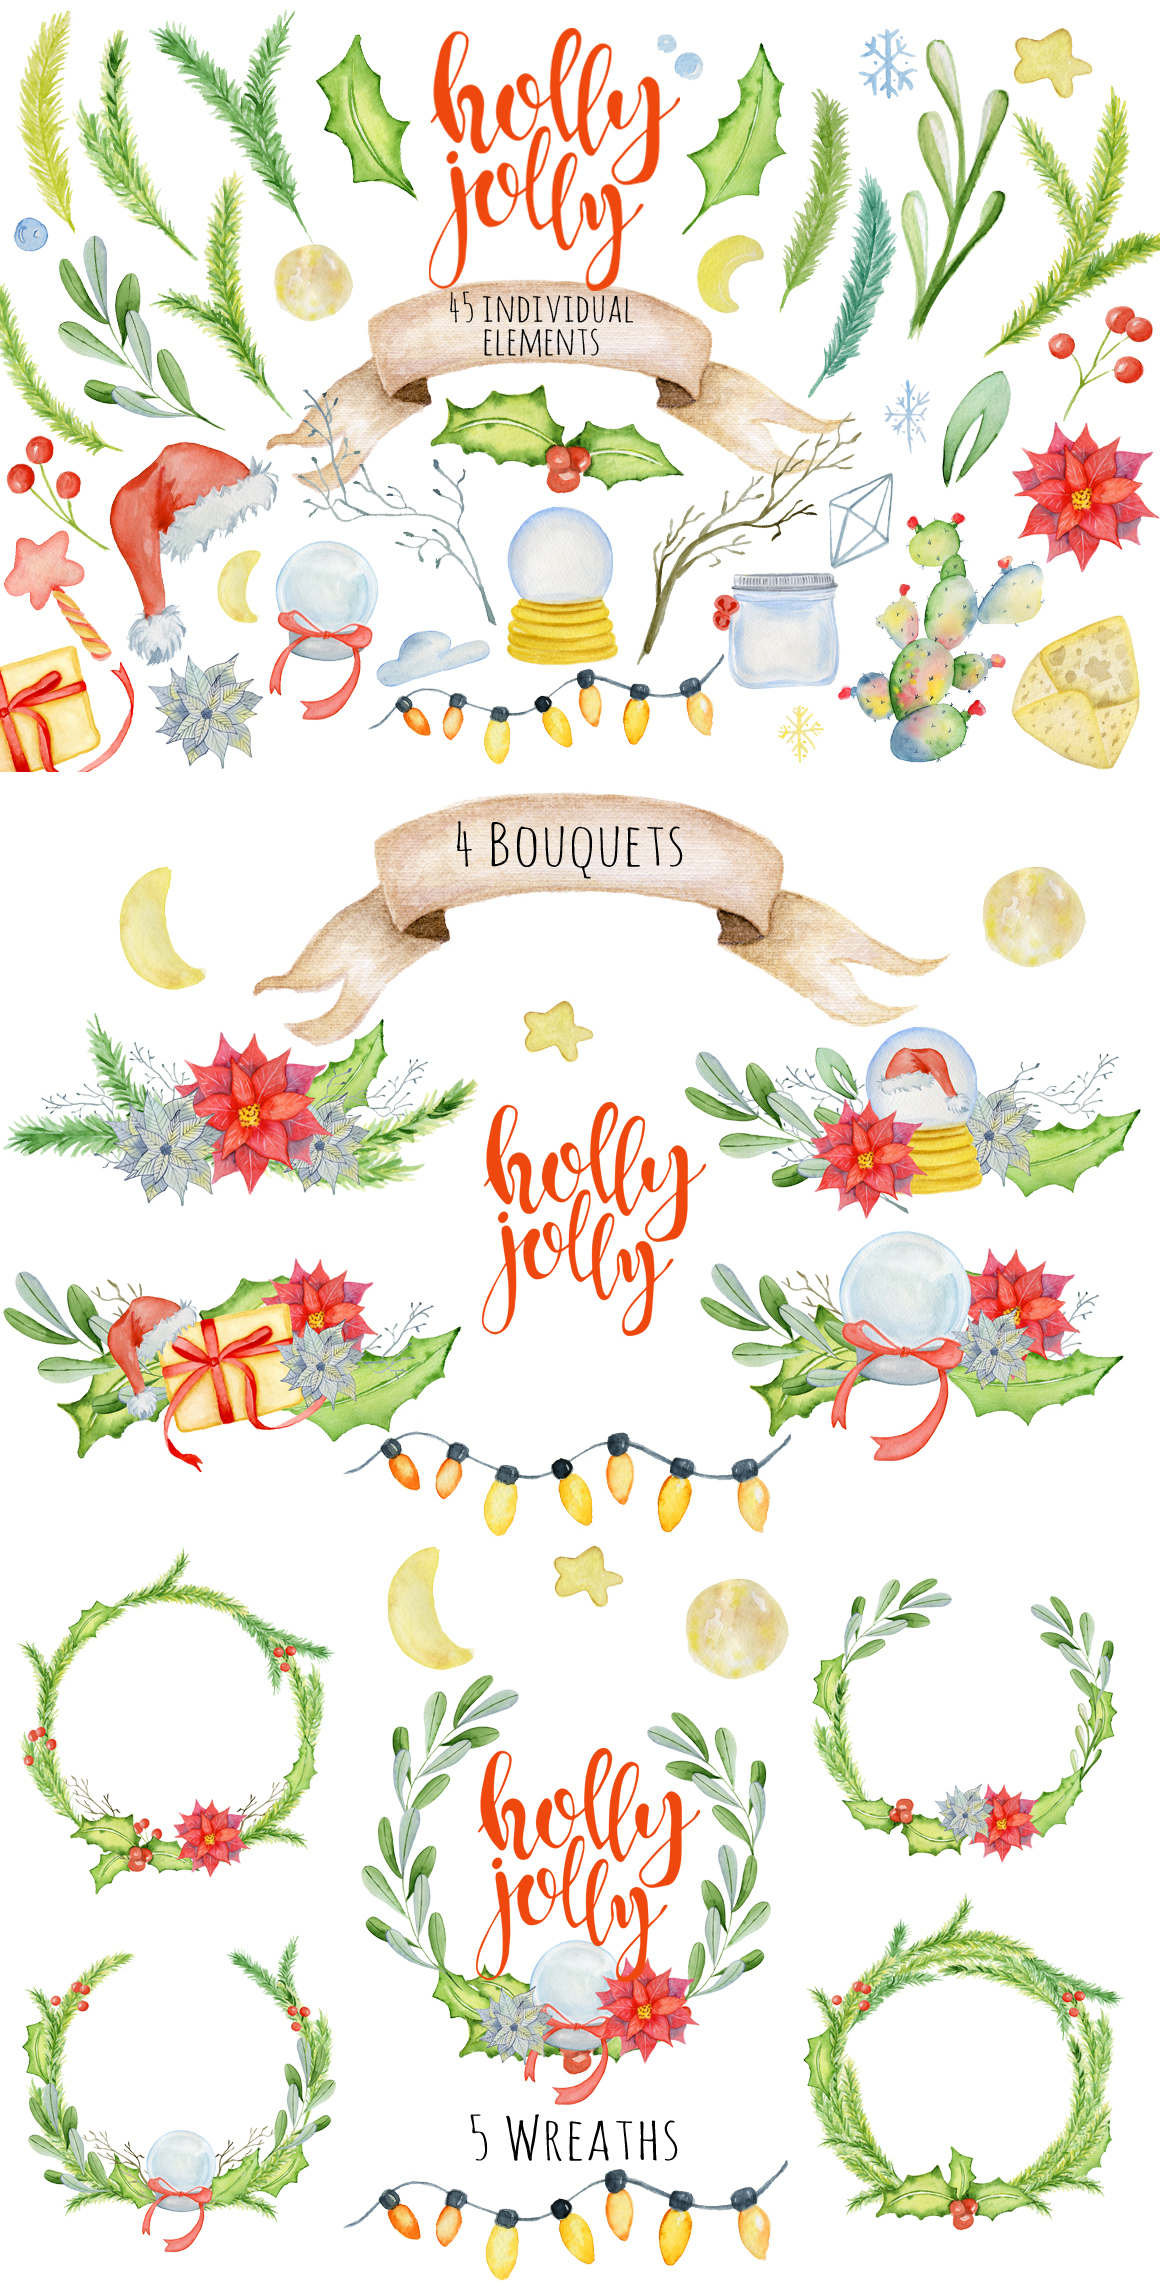 Winter Wonderland Clipart: 14 Christmas Watercolor Clipart Bundles in 1 - $28 - 13 Holly jolly